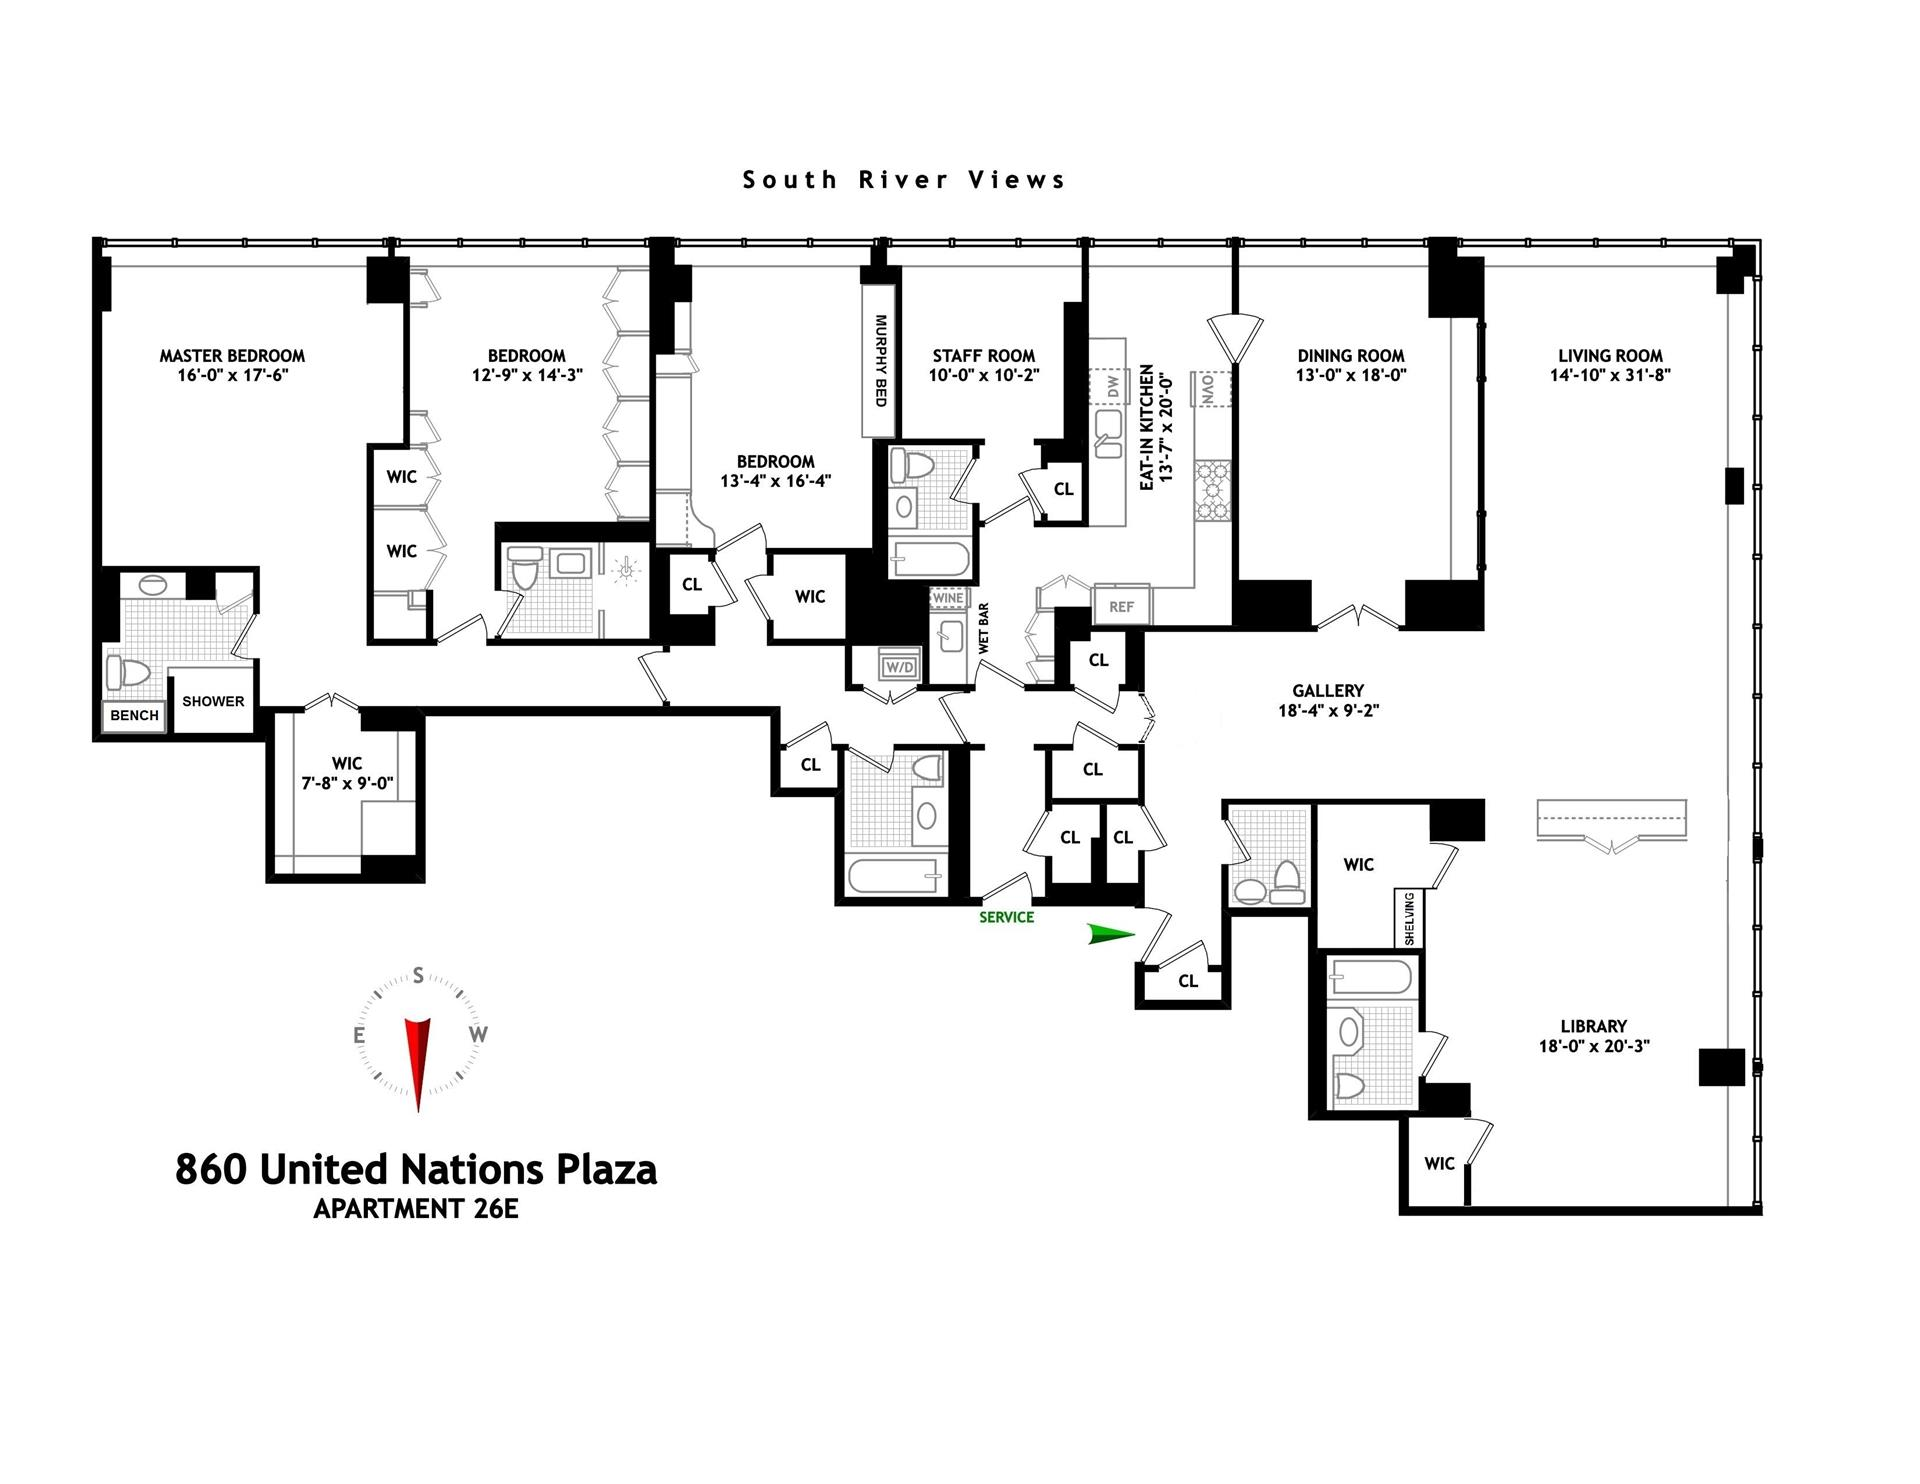 Floor plan of 860 United Nations Plaza, 26E - Turtle Bay, New York